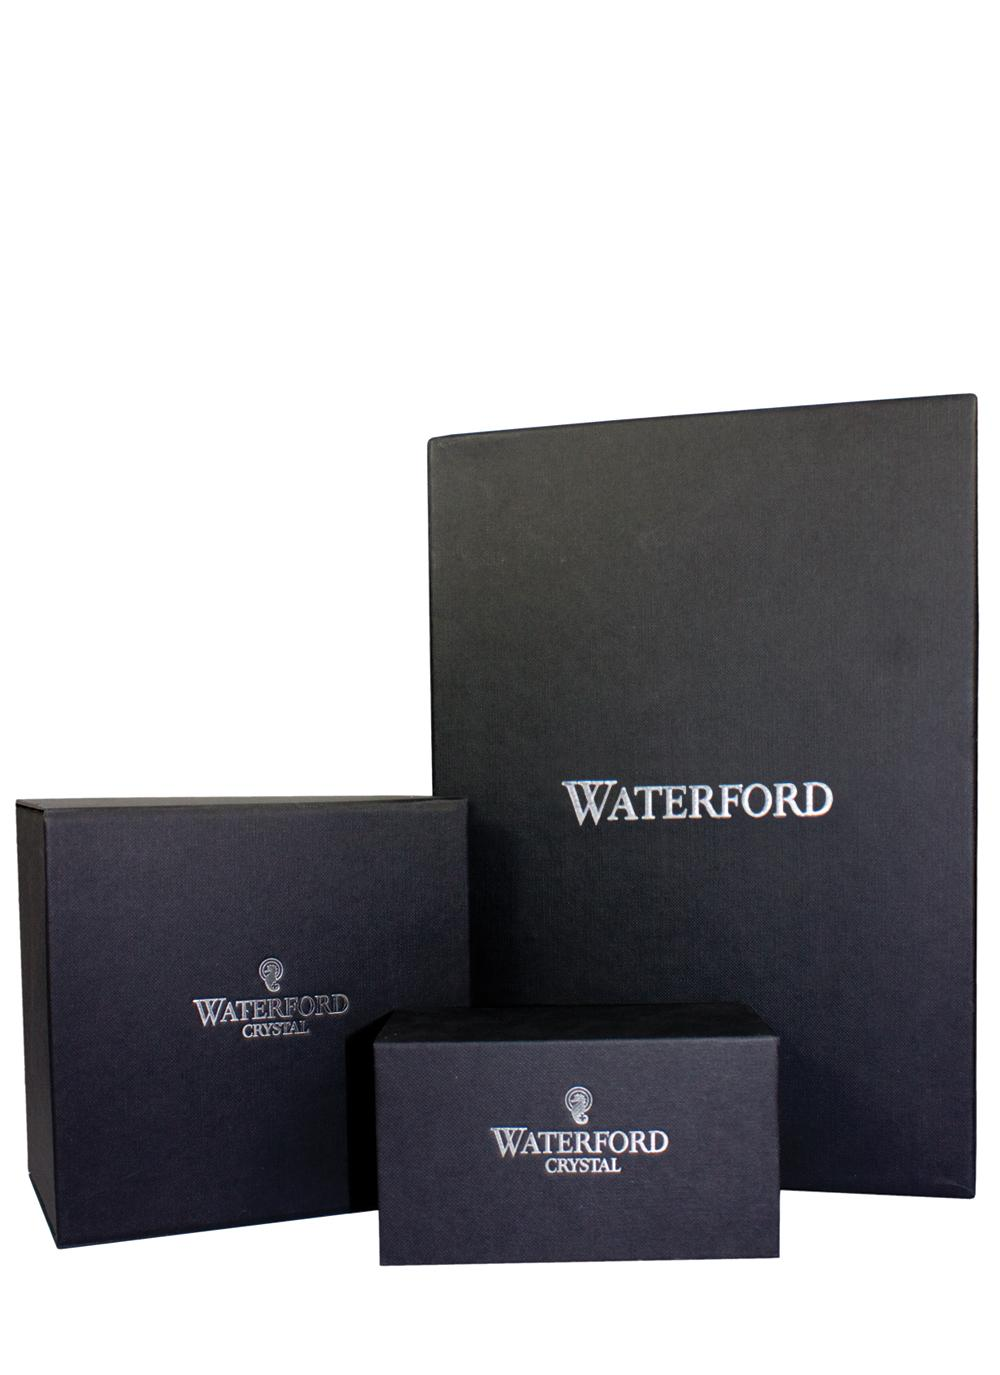 Waterford crystal claddagh collectible blarney waterford crystal claddagh collectible reviewsmspy